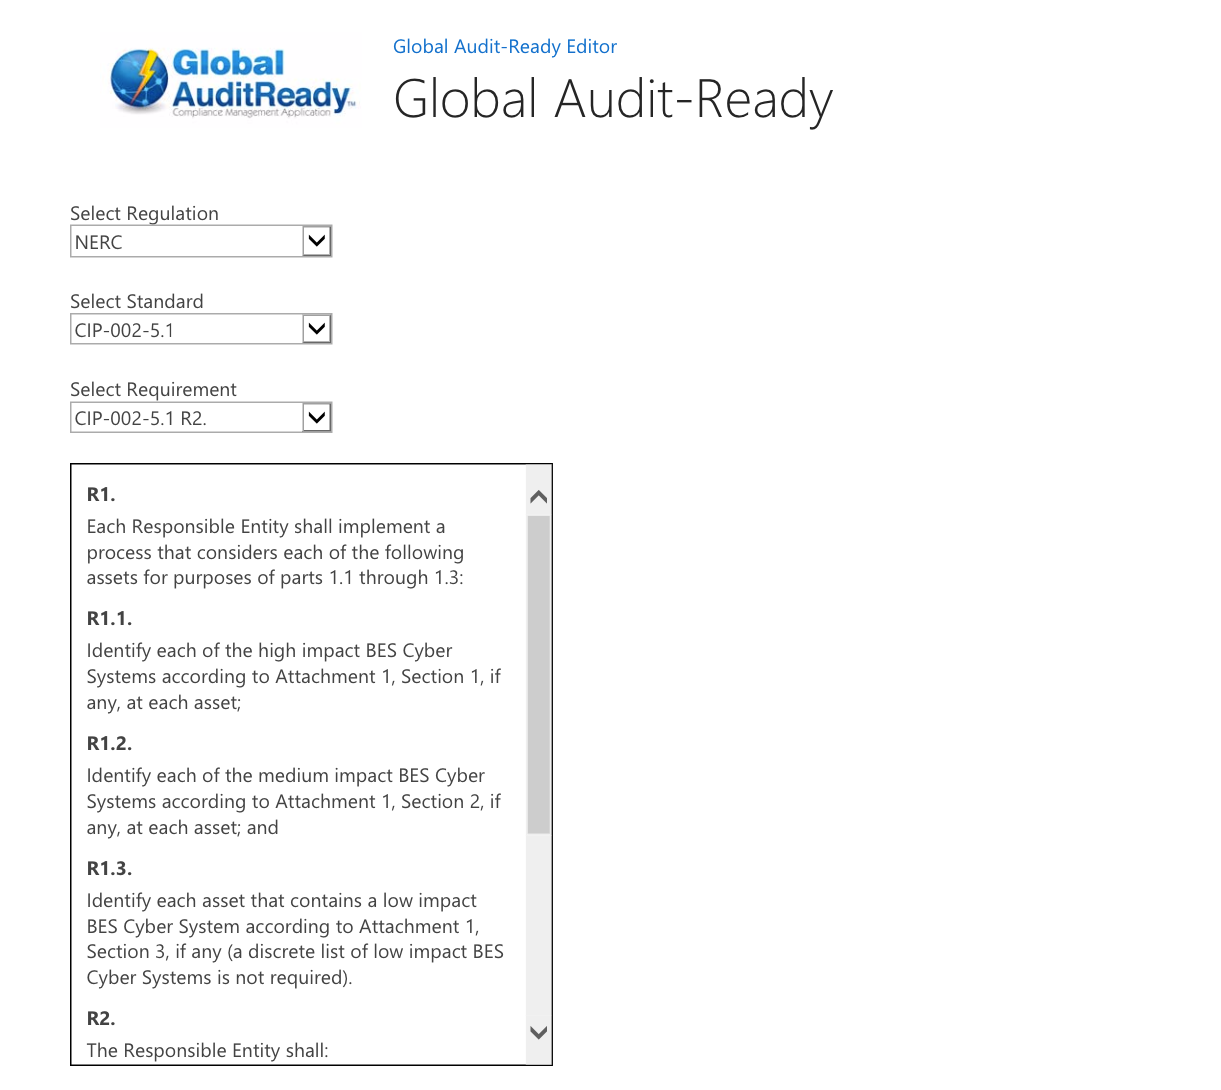 Global-Audit-Ready-Editor-web.png